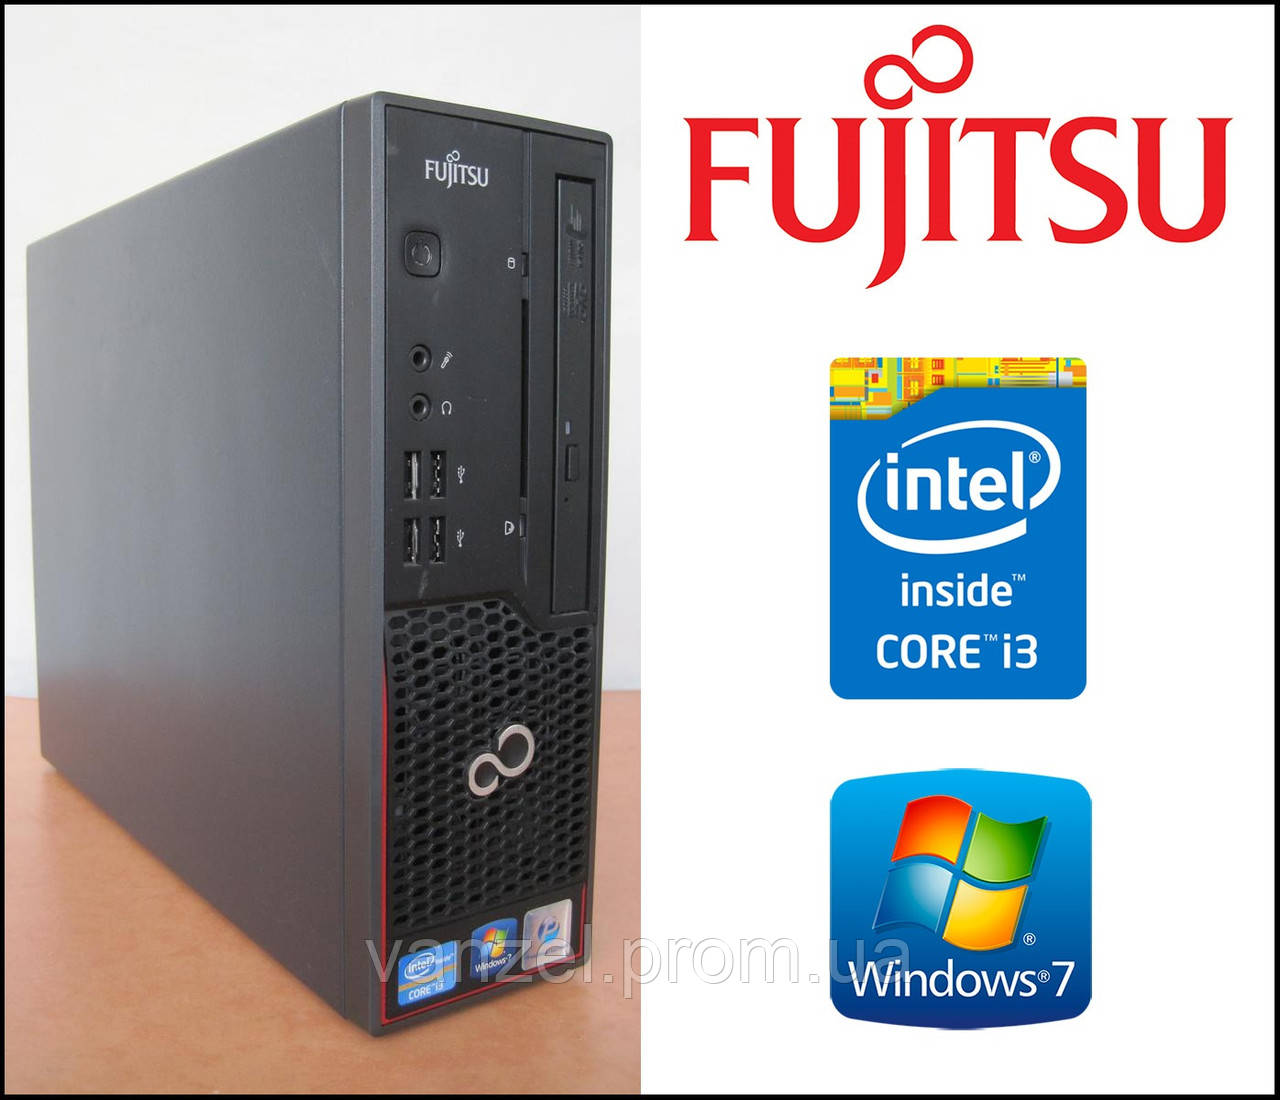 FUJITSU SIEMENS C700 WINDOWS 7 DRIVER DOWNLOAD